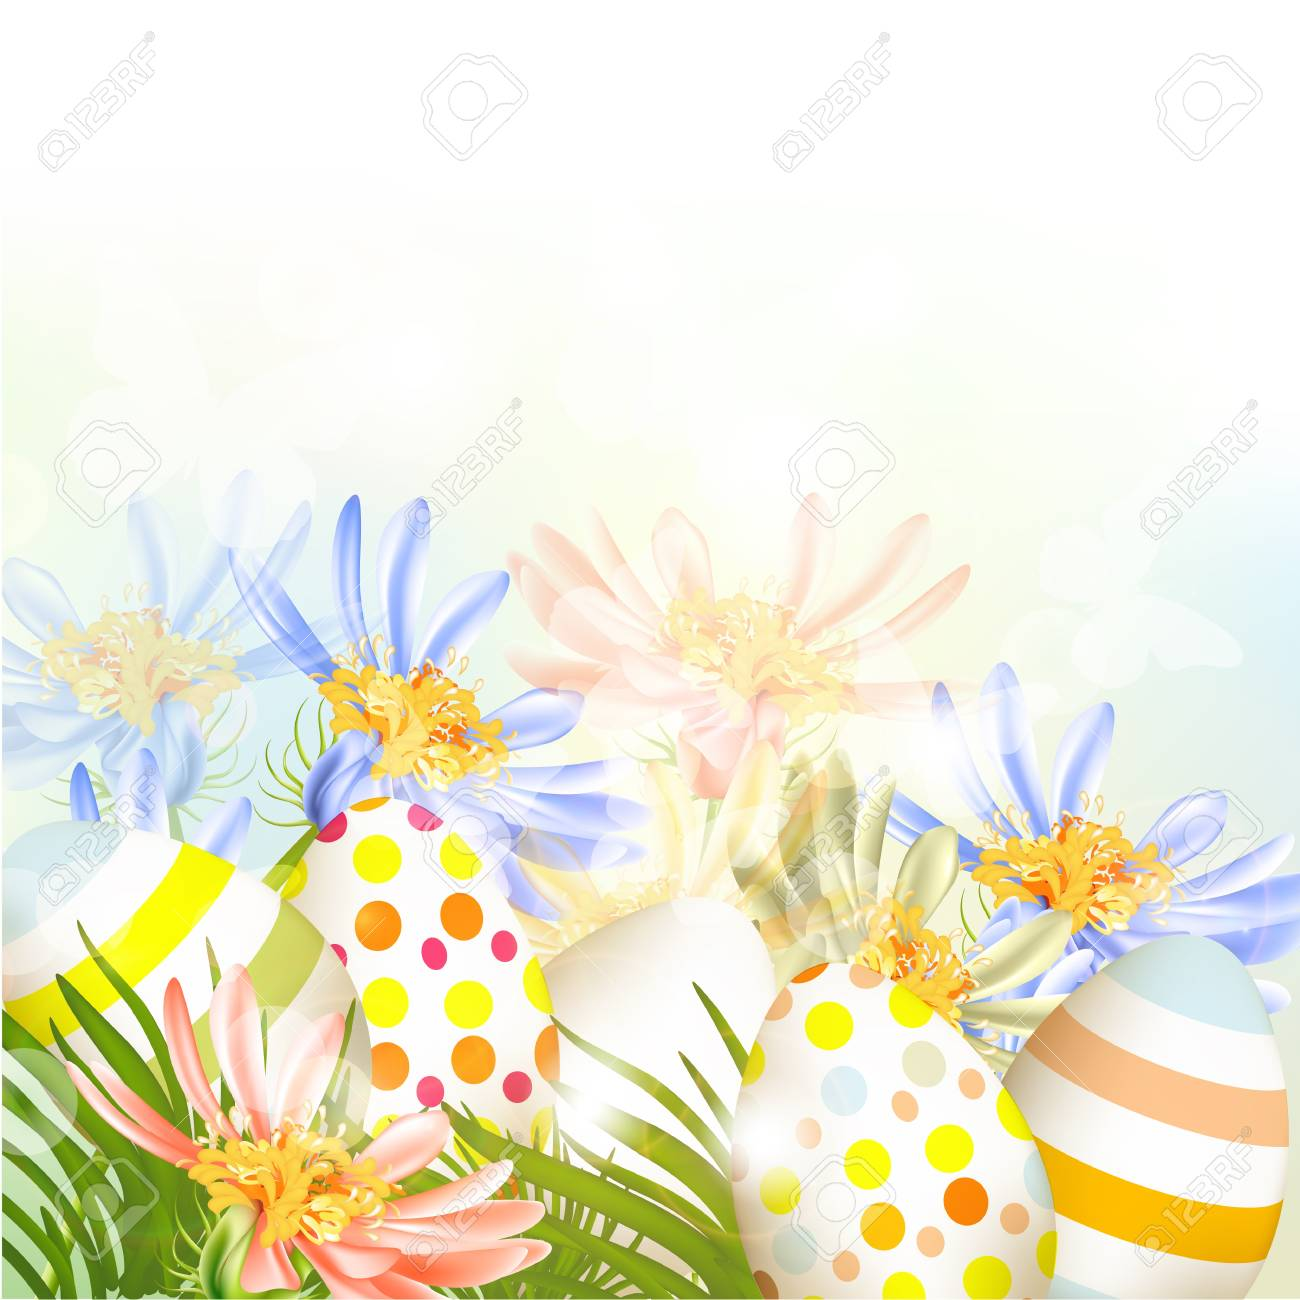 Cute Easter outdoor background with clear space, grass and eggs Stock Vector - 18707614